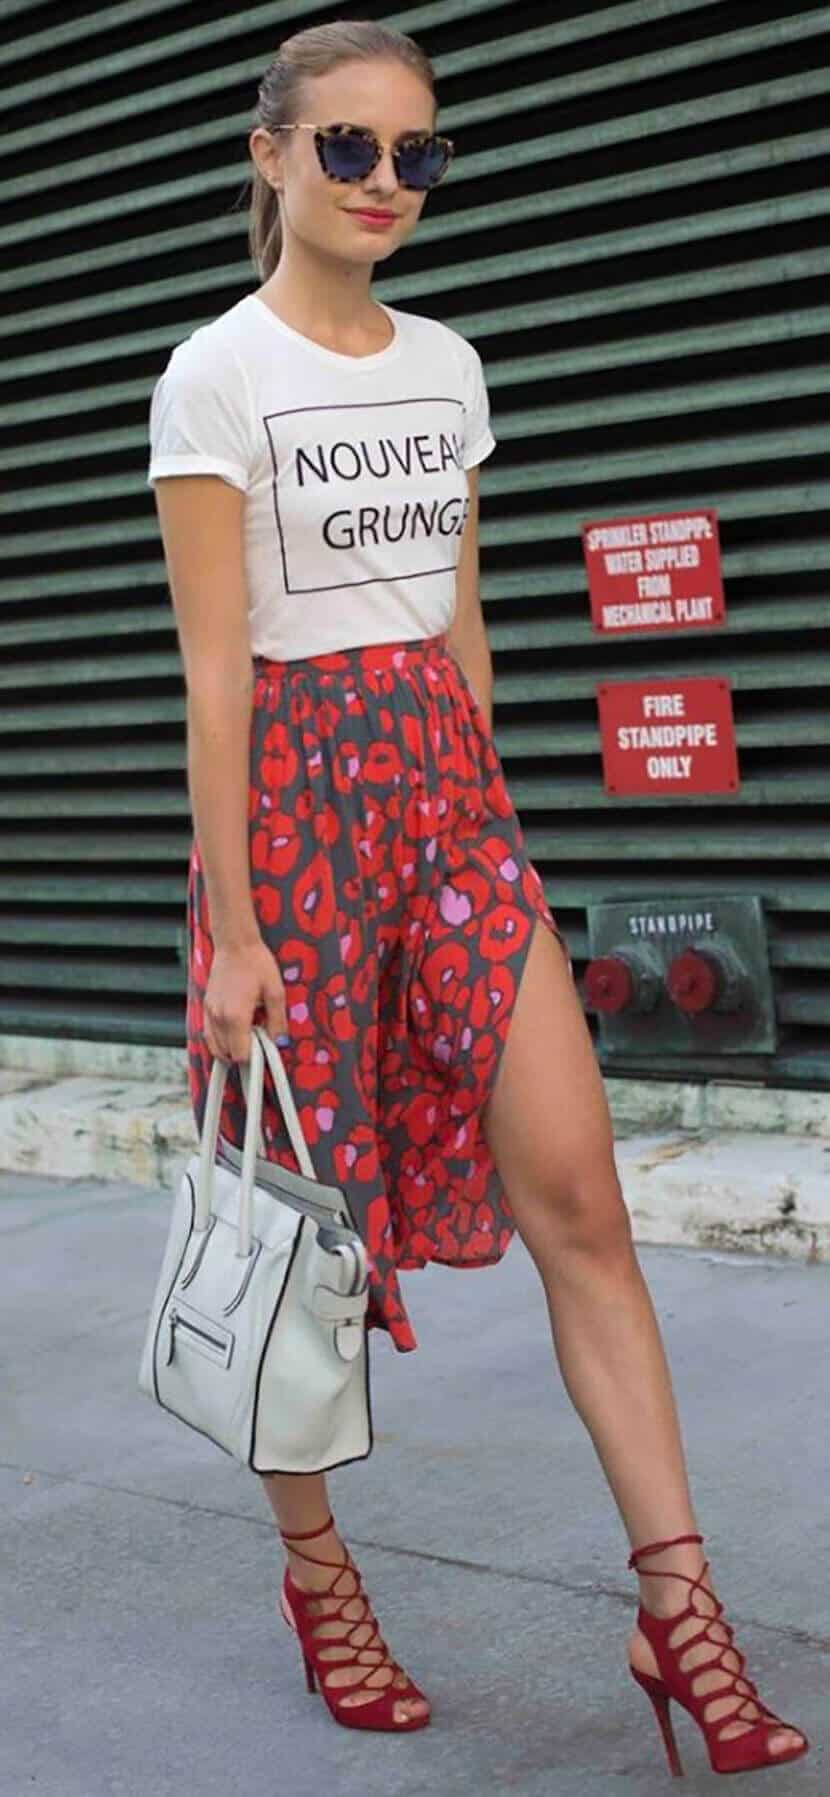 Nouveau Grunge Red Fashion